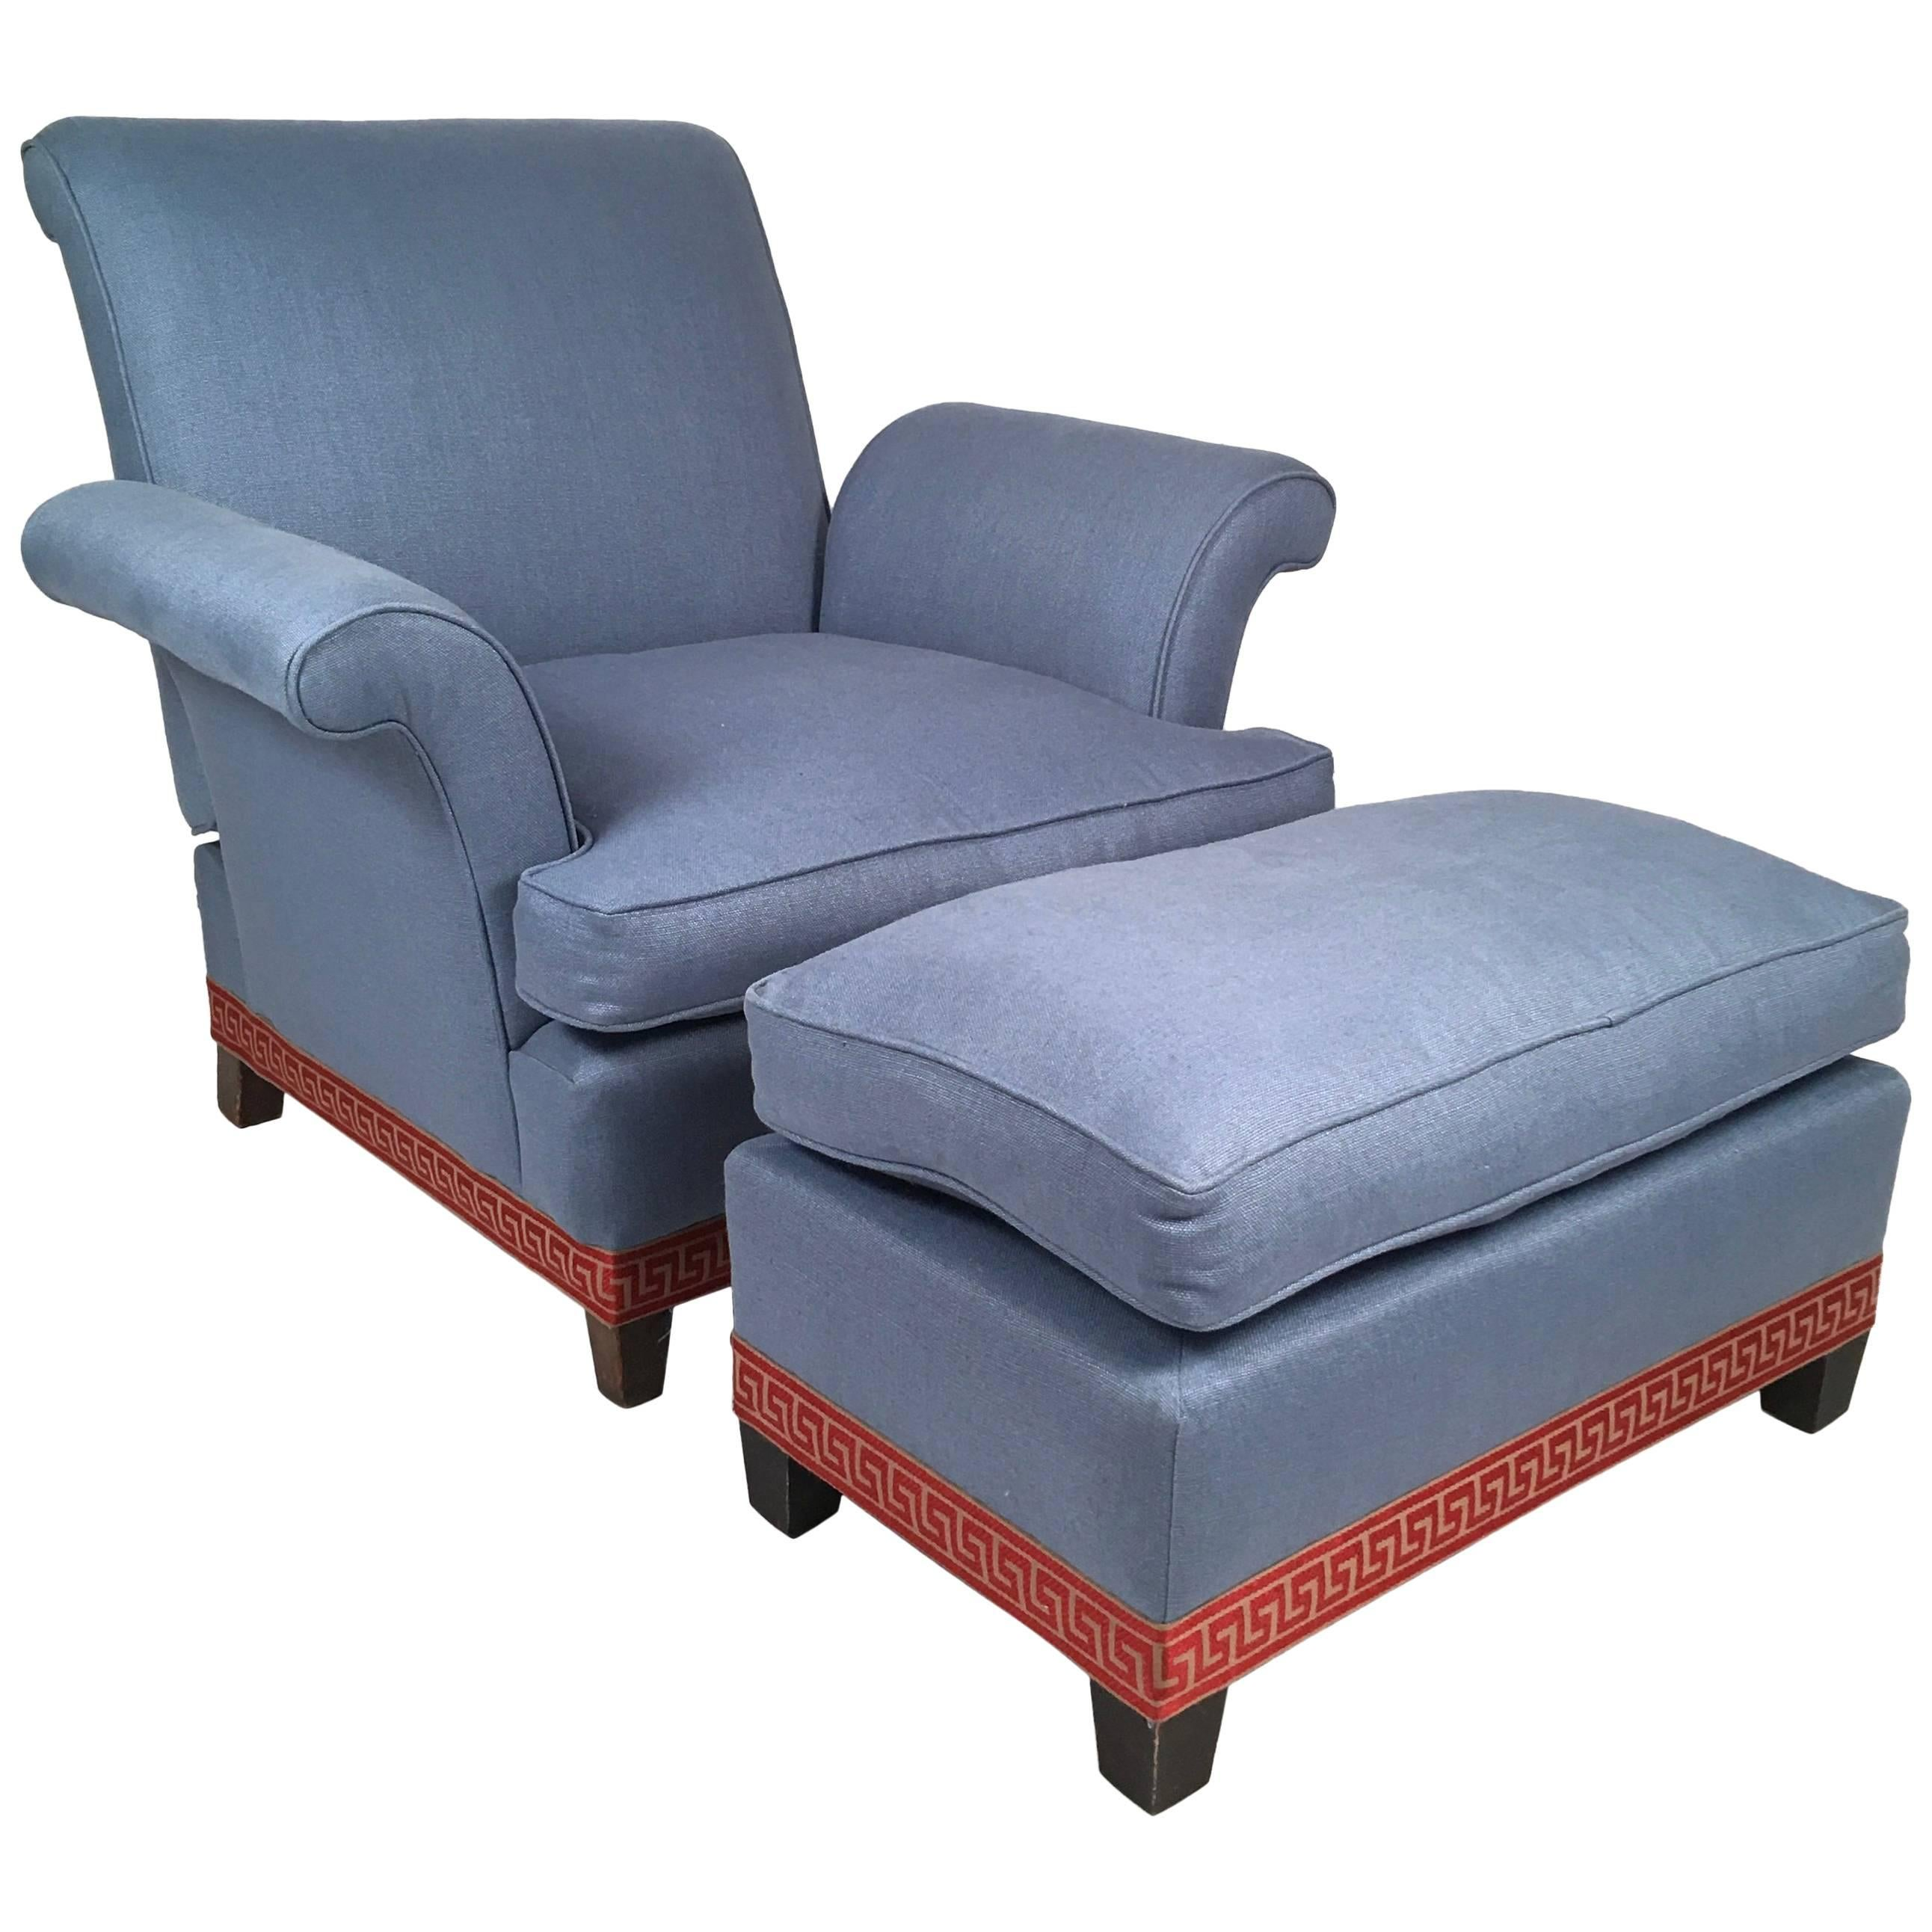 Incroyable Reclining Club Chair With Ottoman, Circa 1920s For Sale